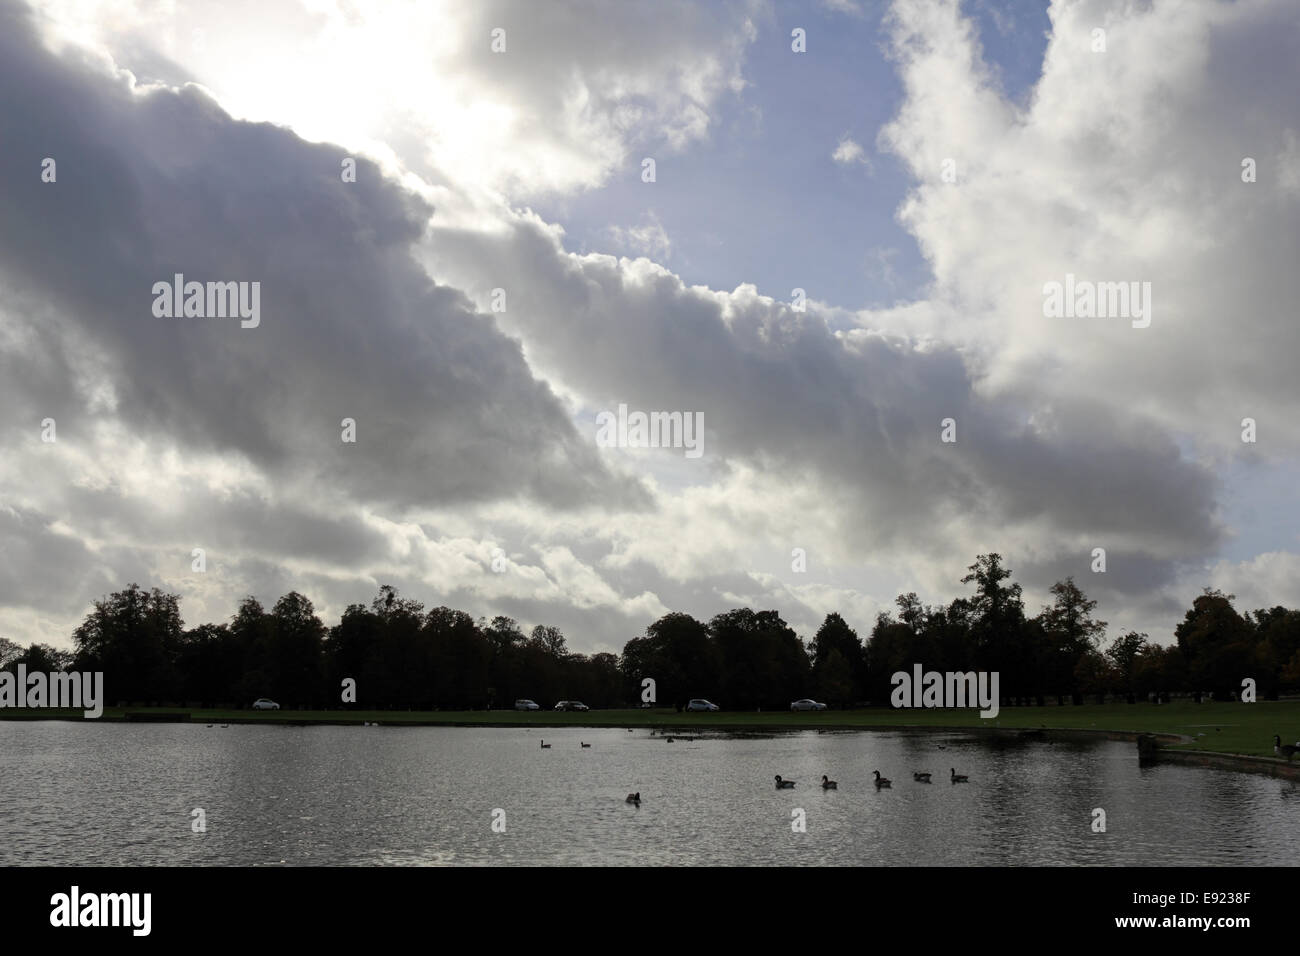 Bushy Park, SW London, UK. 17th October 2014. Dramatic cumulus cloud formations over the Diana Fountain pond on - Stock Image